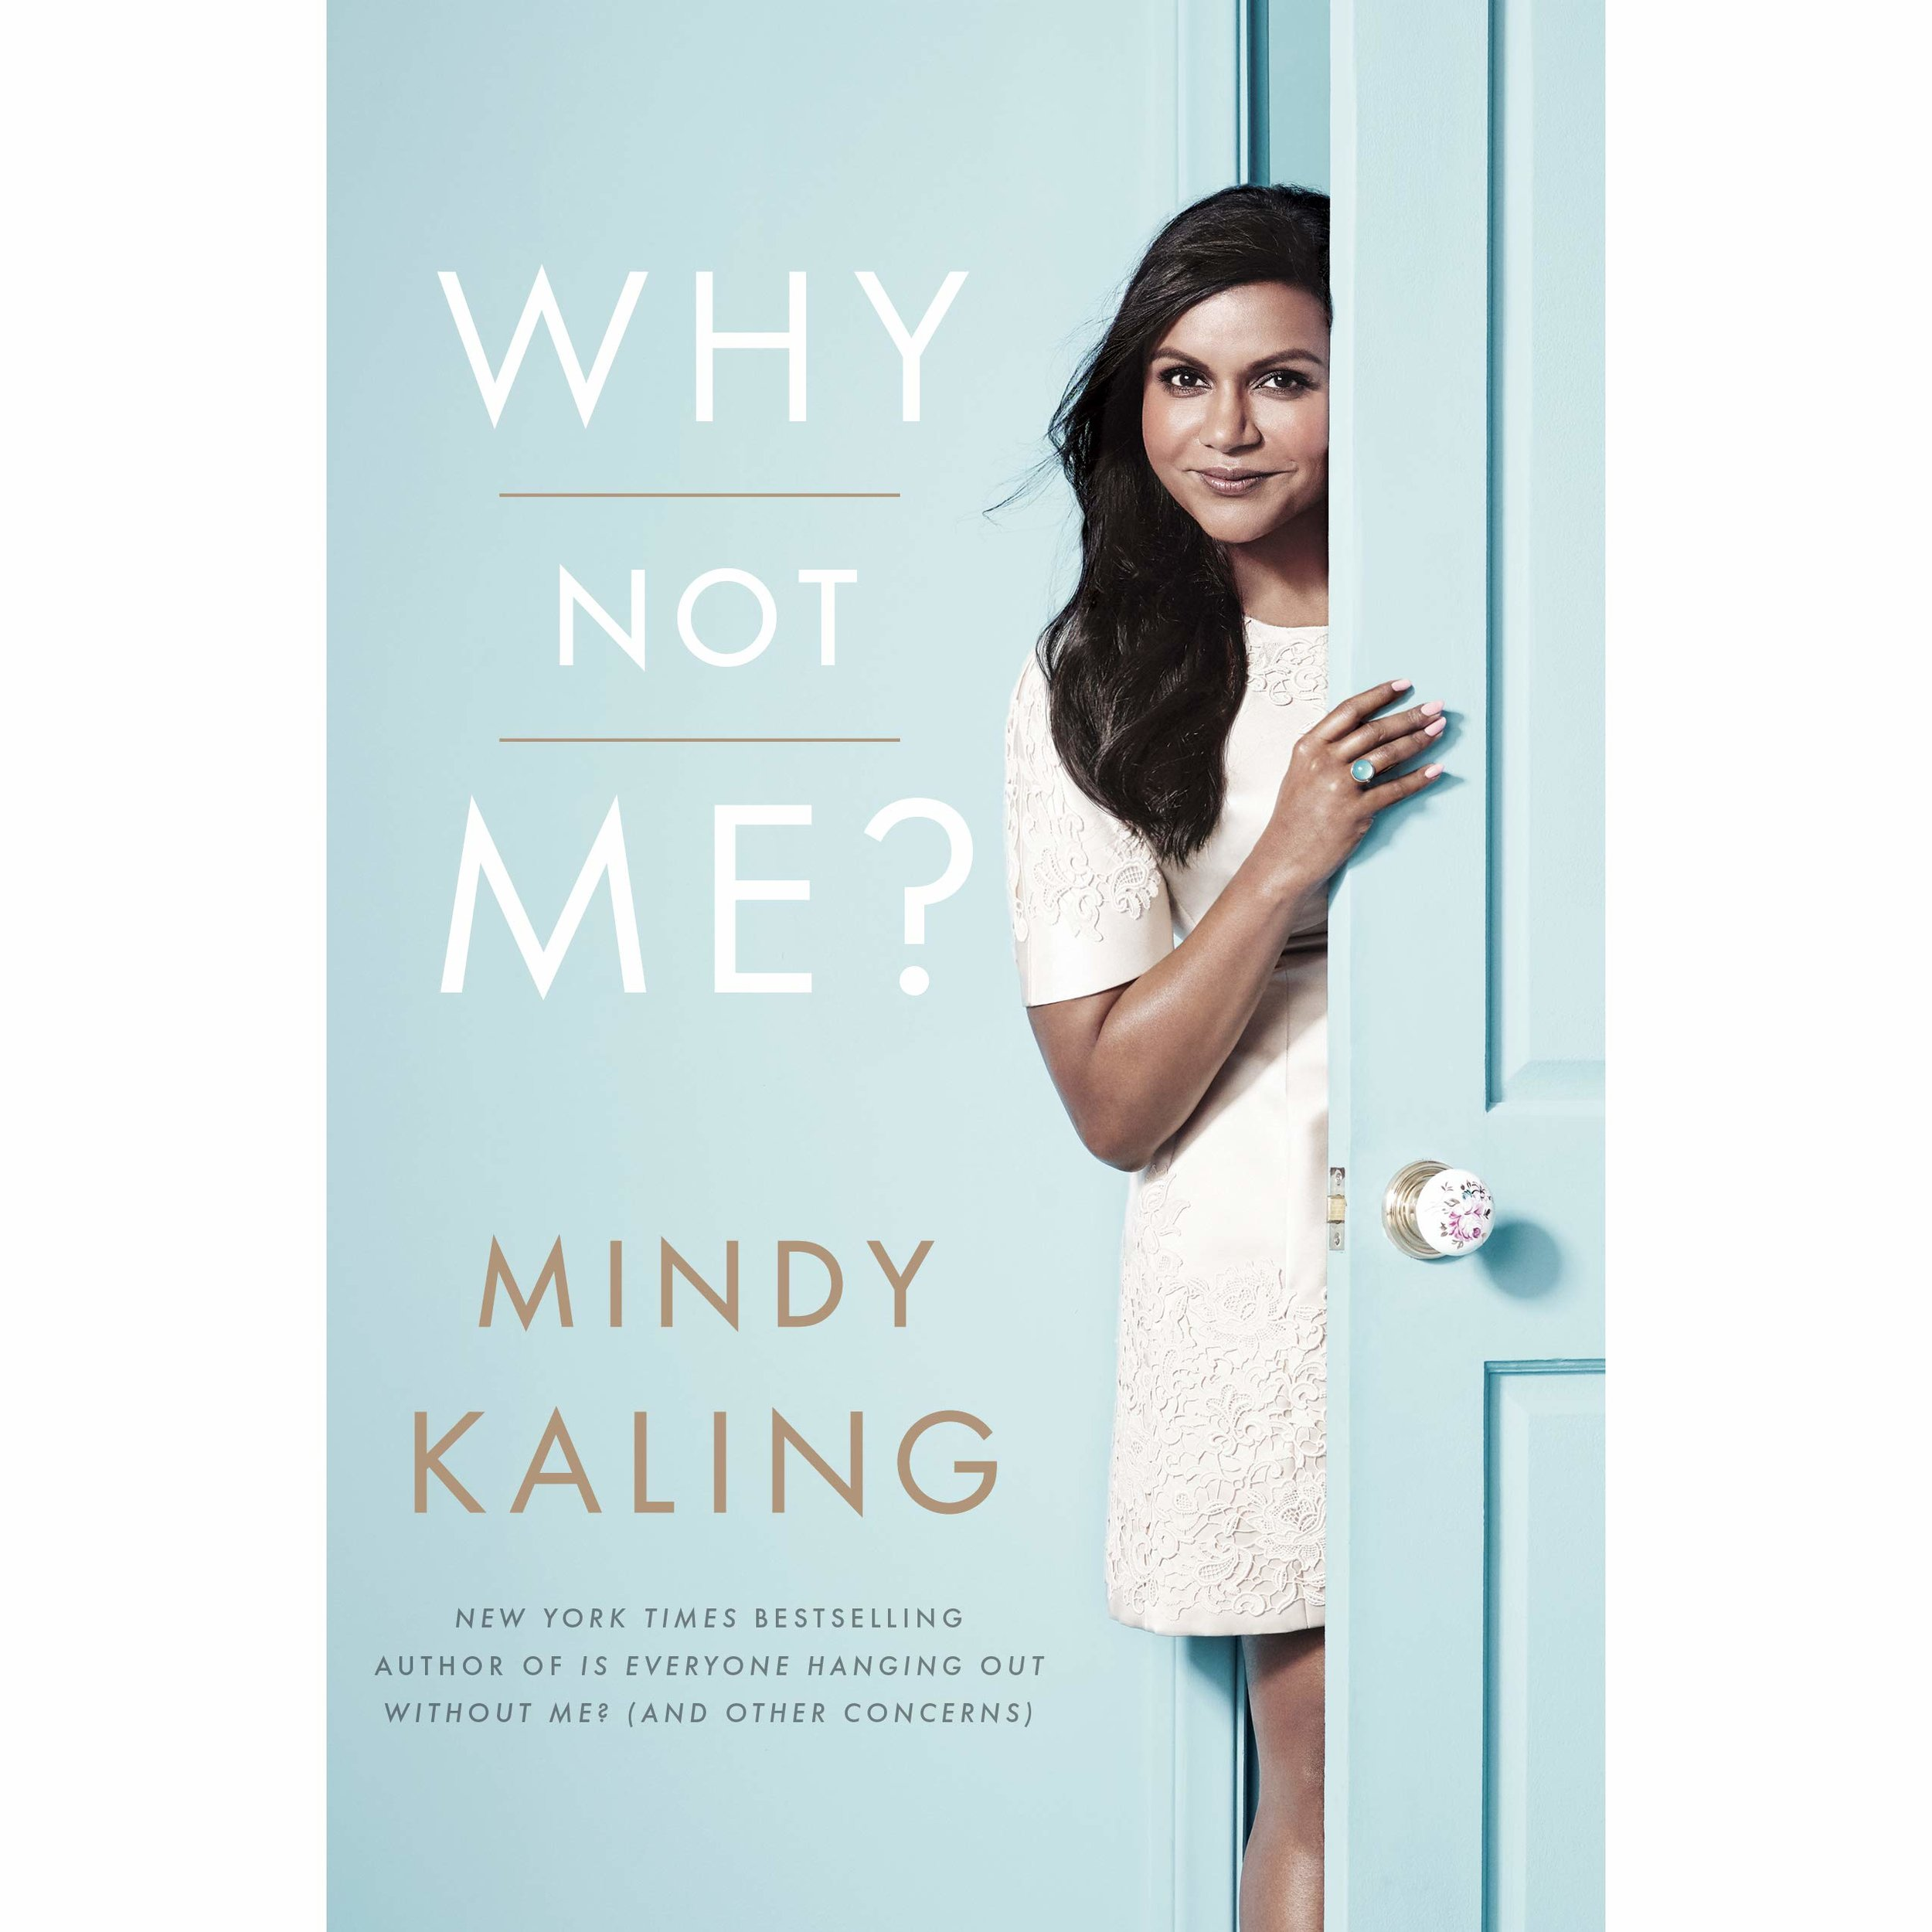 Why Not Me? by Mindy Kaling ($14)